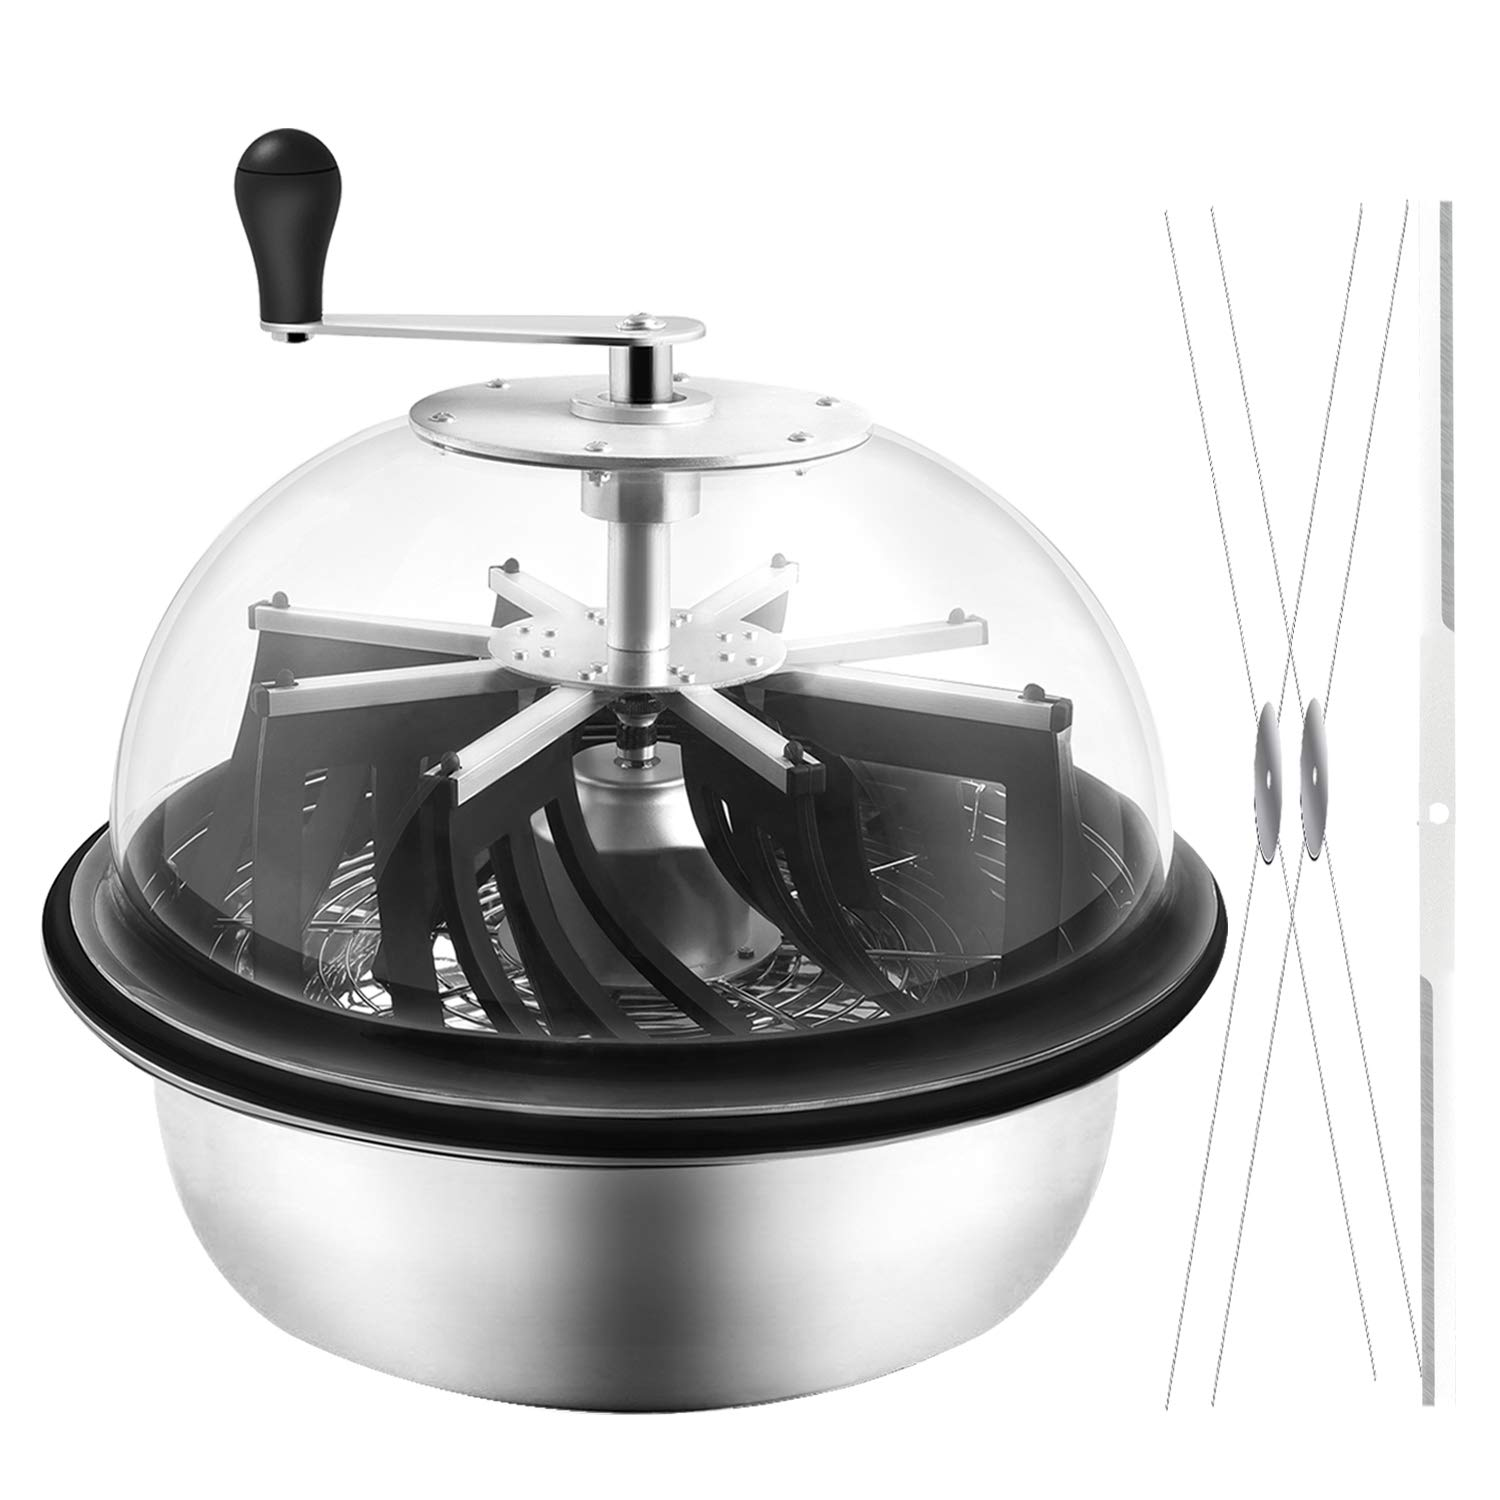 VIVOSUN 16 inch Bud Leaf Bowl Trimmer - Clear Visibility Dome, Sharp Stainless Steel Blades for Spin Cut & Solid Metal Gear Box, Portable & Easy to Clean